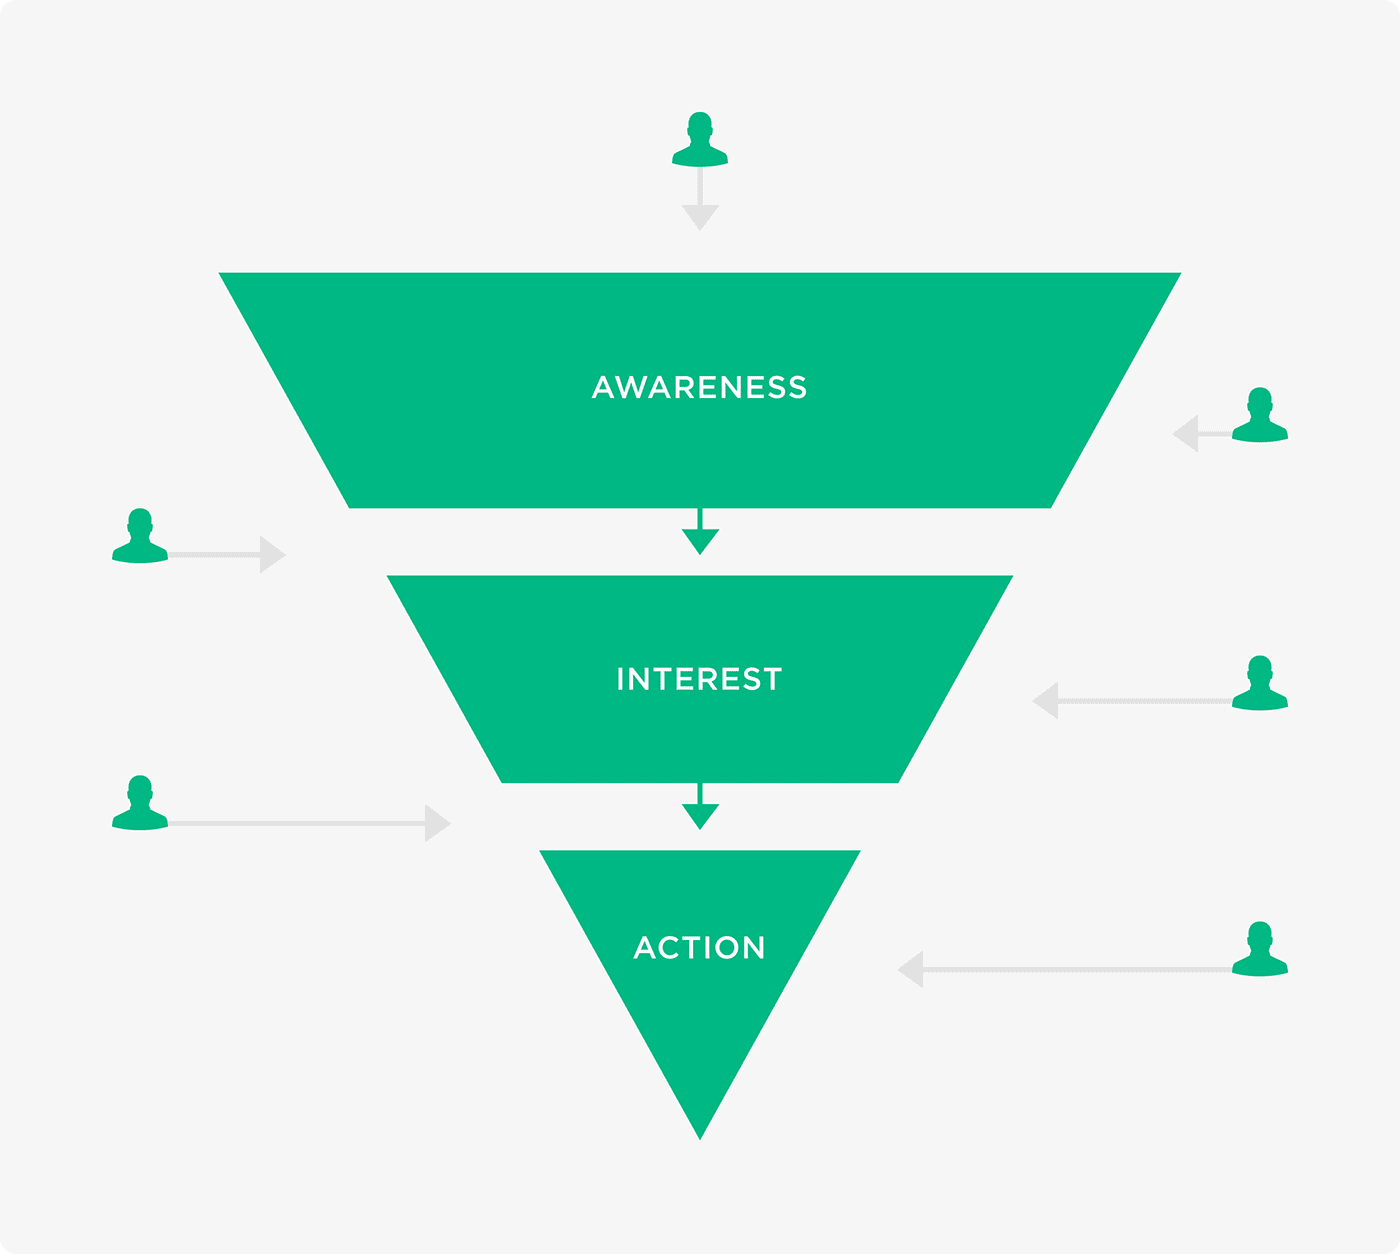 Users enter website at various stages of the funnel